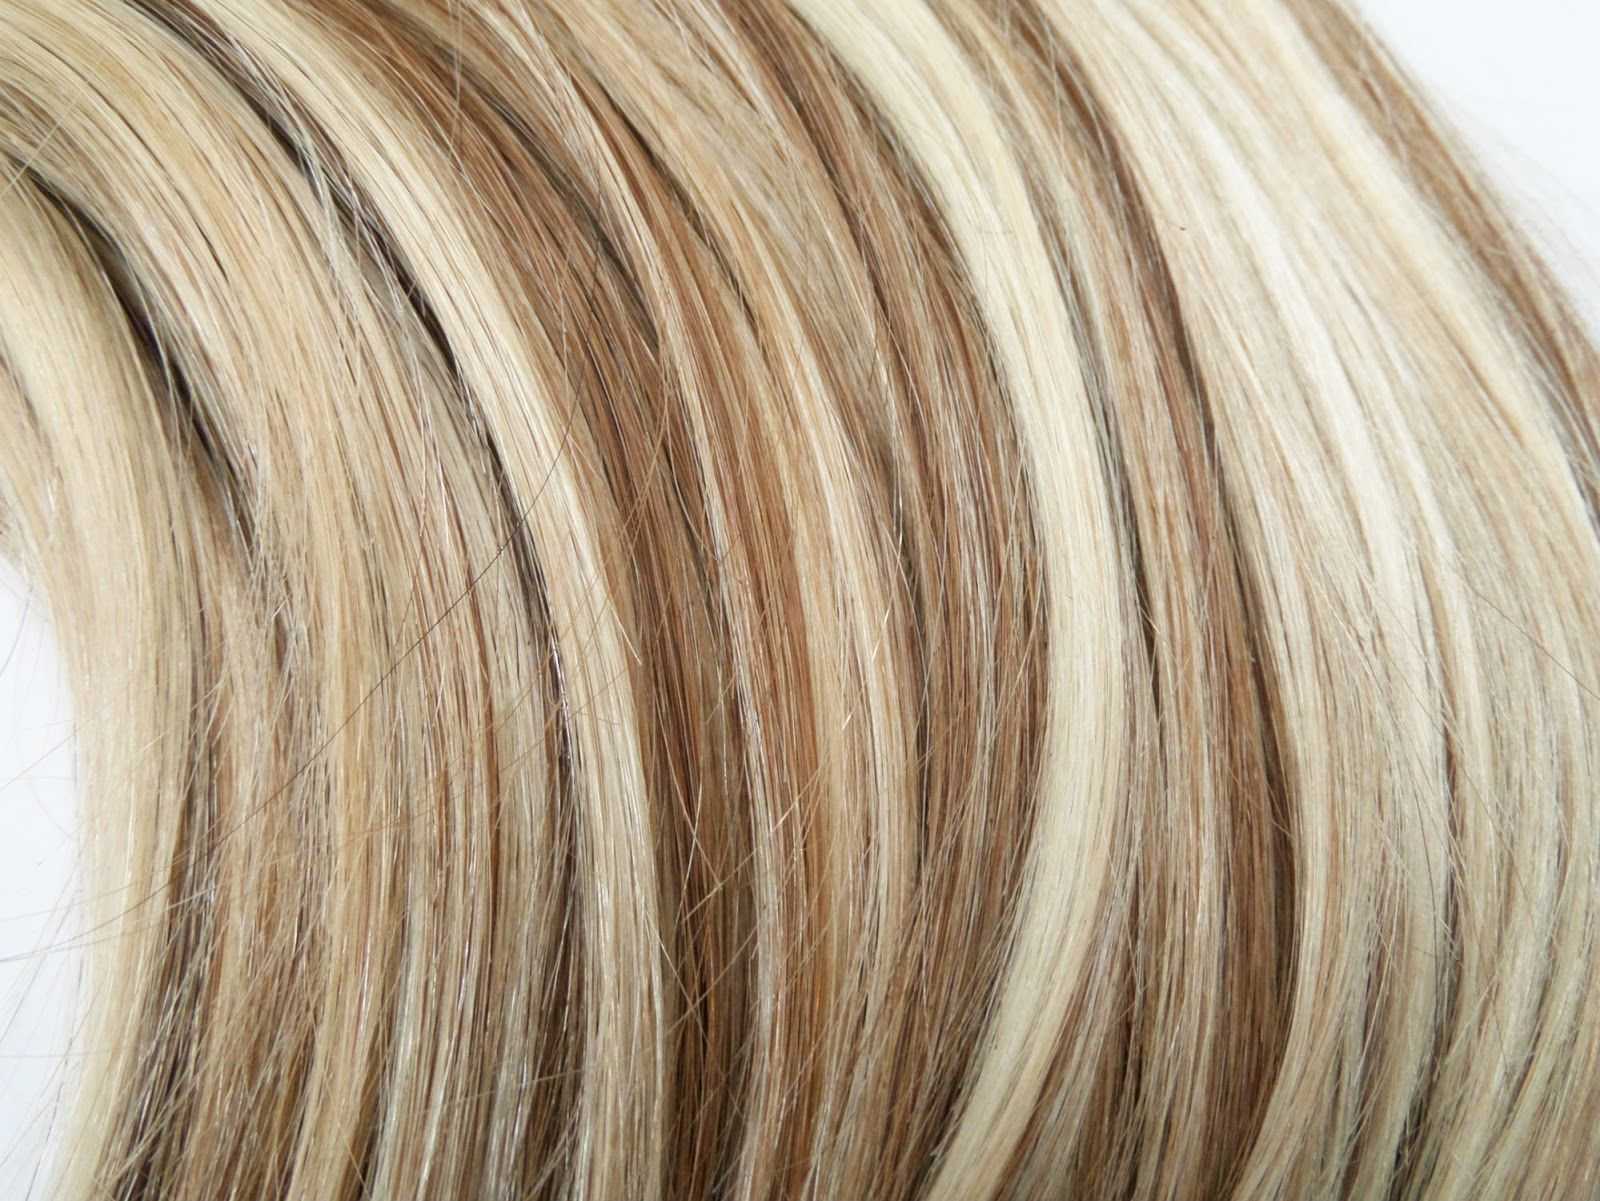 Dirty Looks Hair Extensions Toasted Highlights Capelli Corti